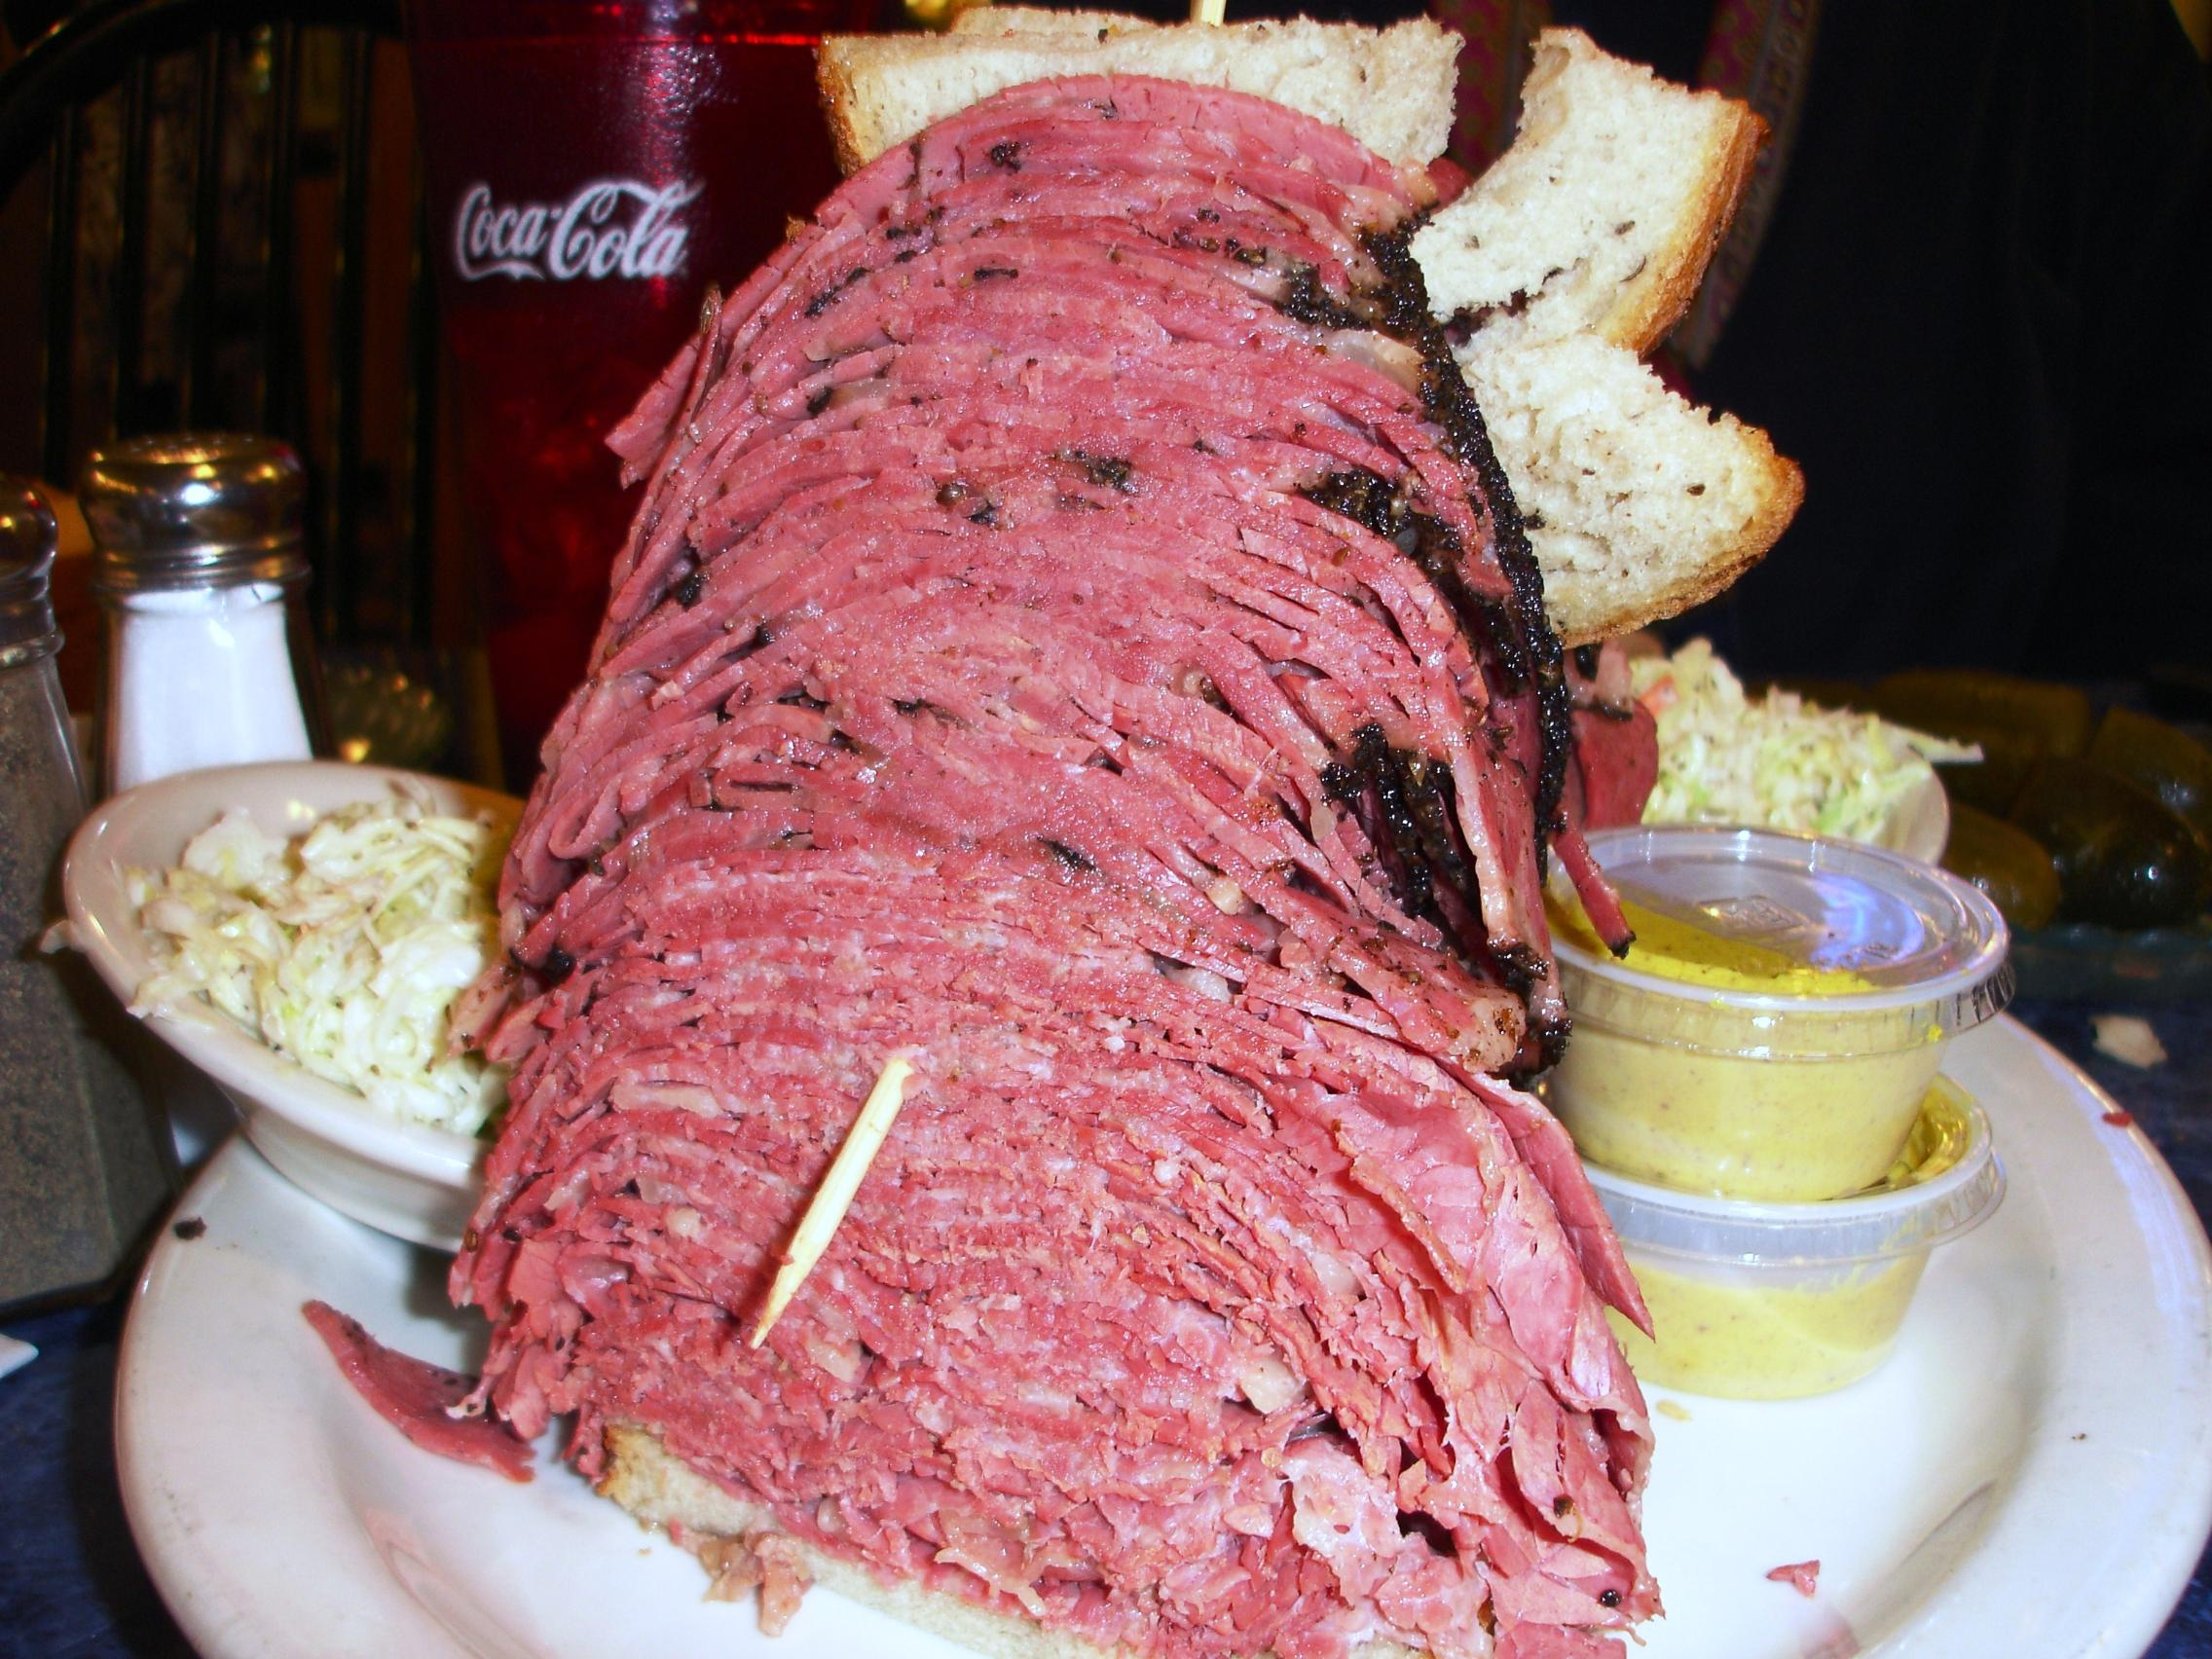 One pound ten ounces of pastrami (top) and corned beef (bottom). Both meats in top form.